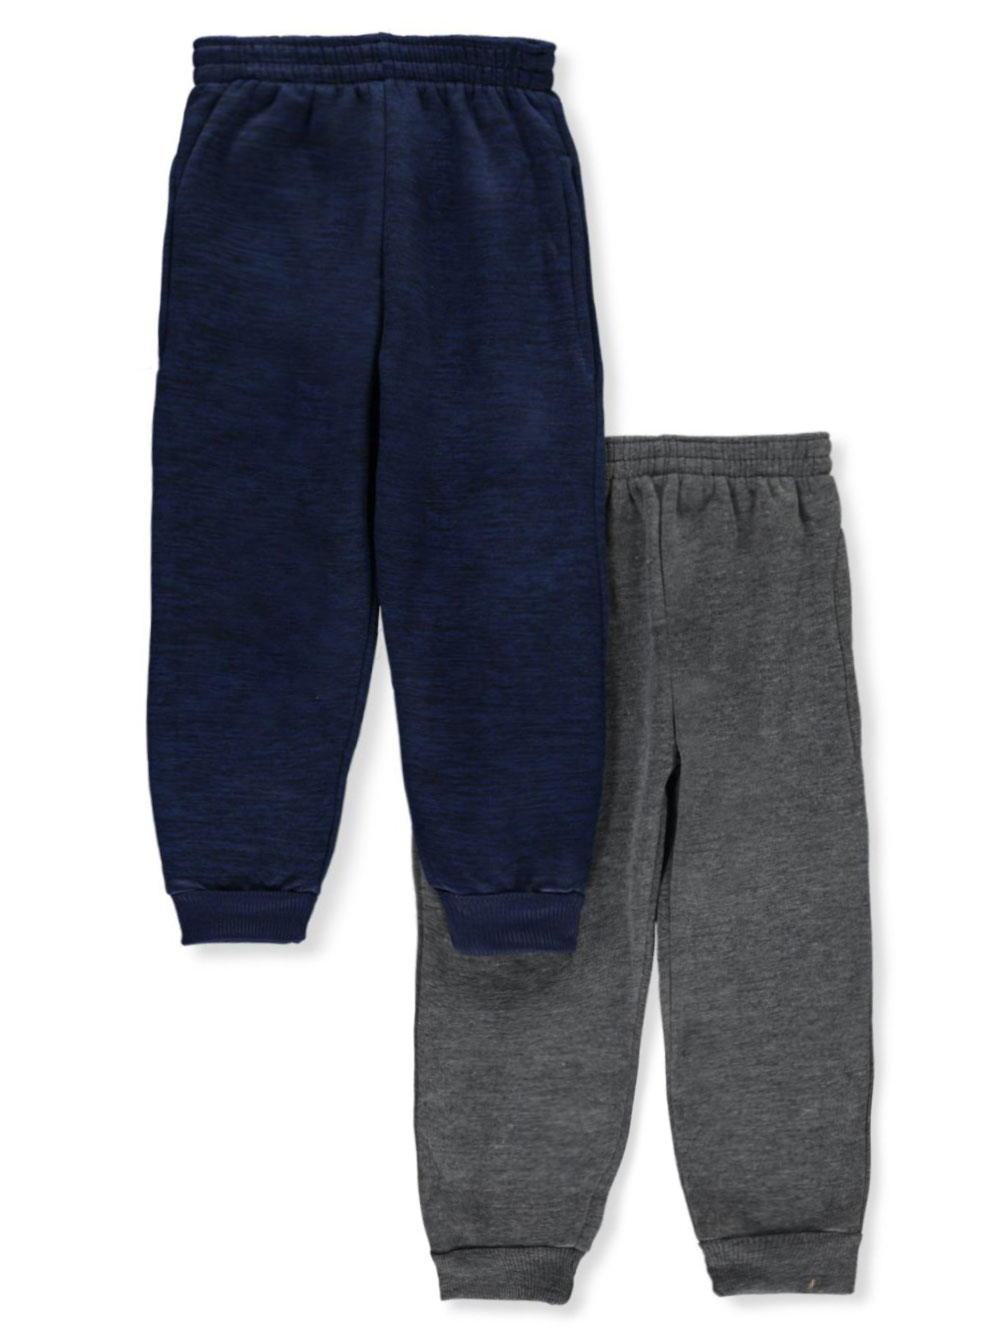 Boys Black and Red Sweatpants